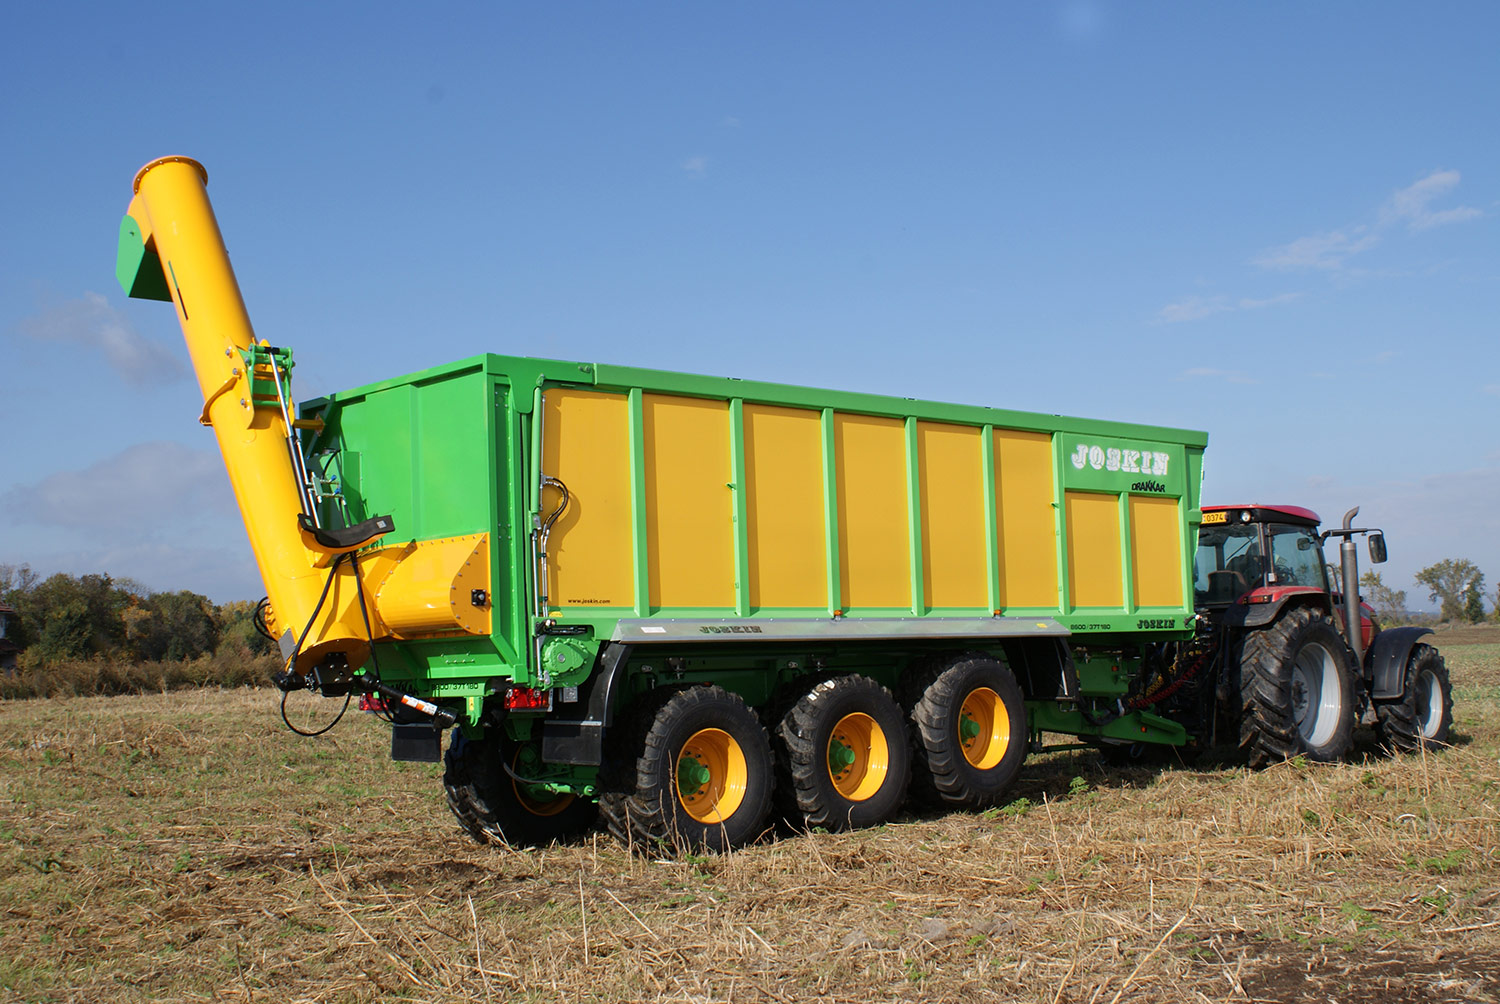 New auger option on Joskin grain trailer - Agriland ie